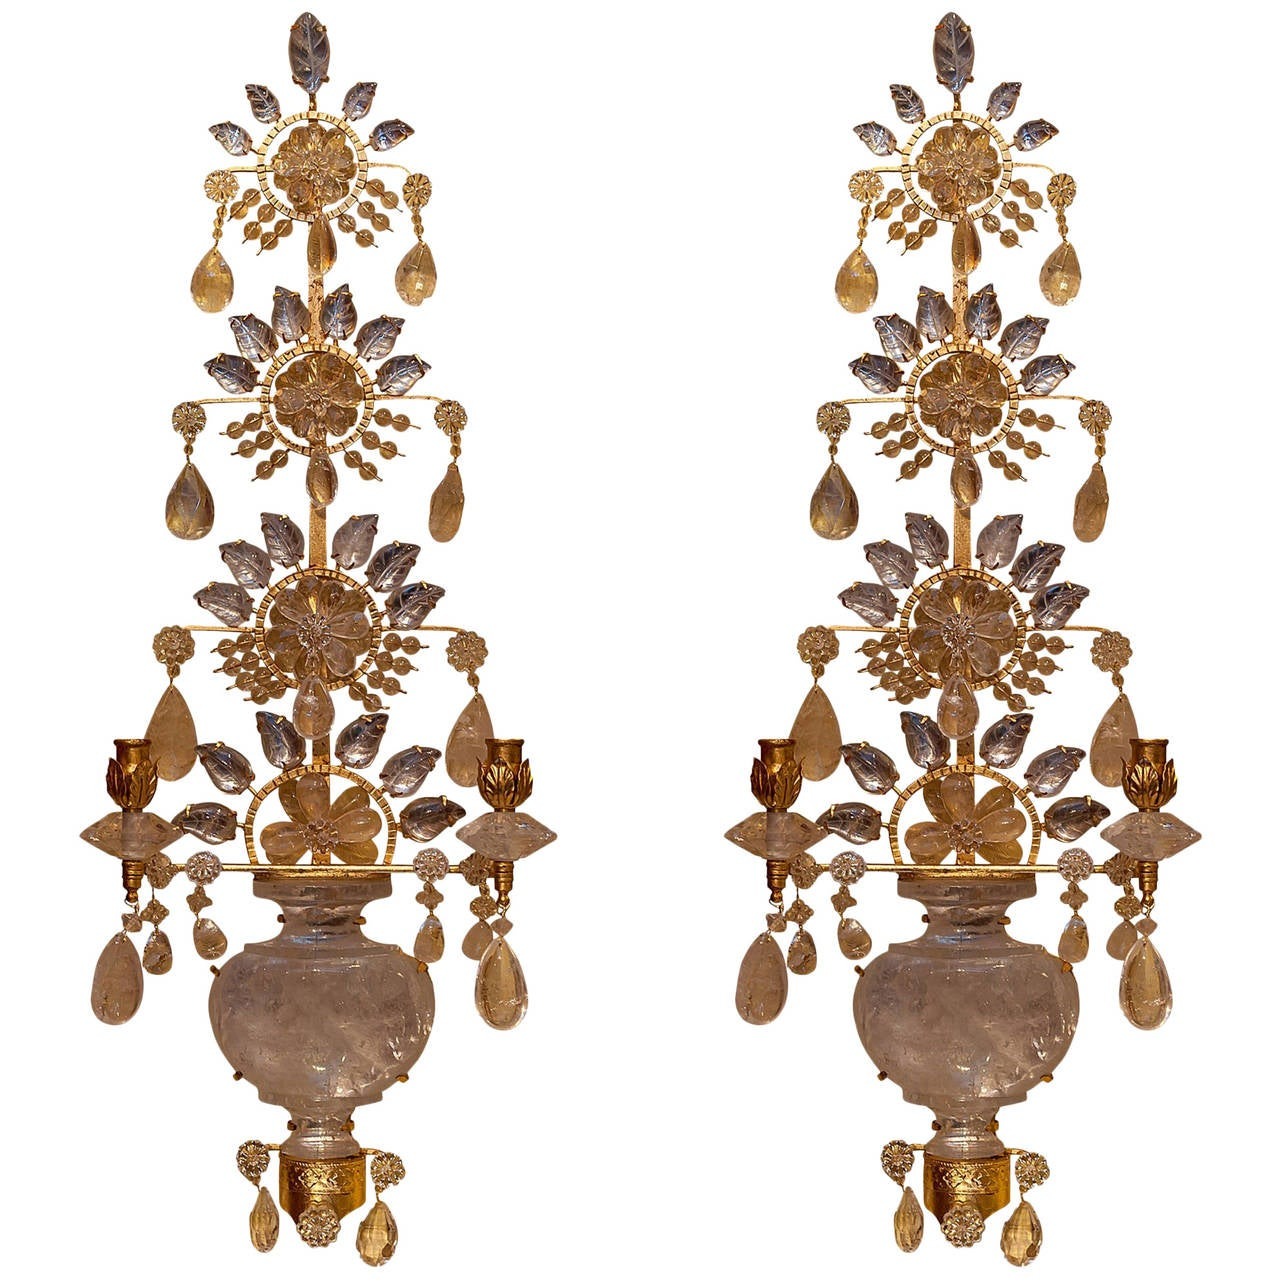 Pair of Rock Crystal and Gilt Metal Two-Arm Wall Light Sconces For Sale